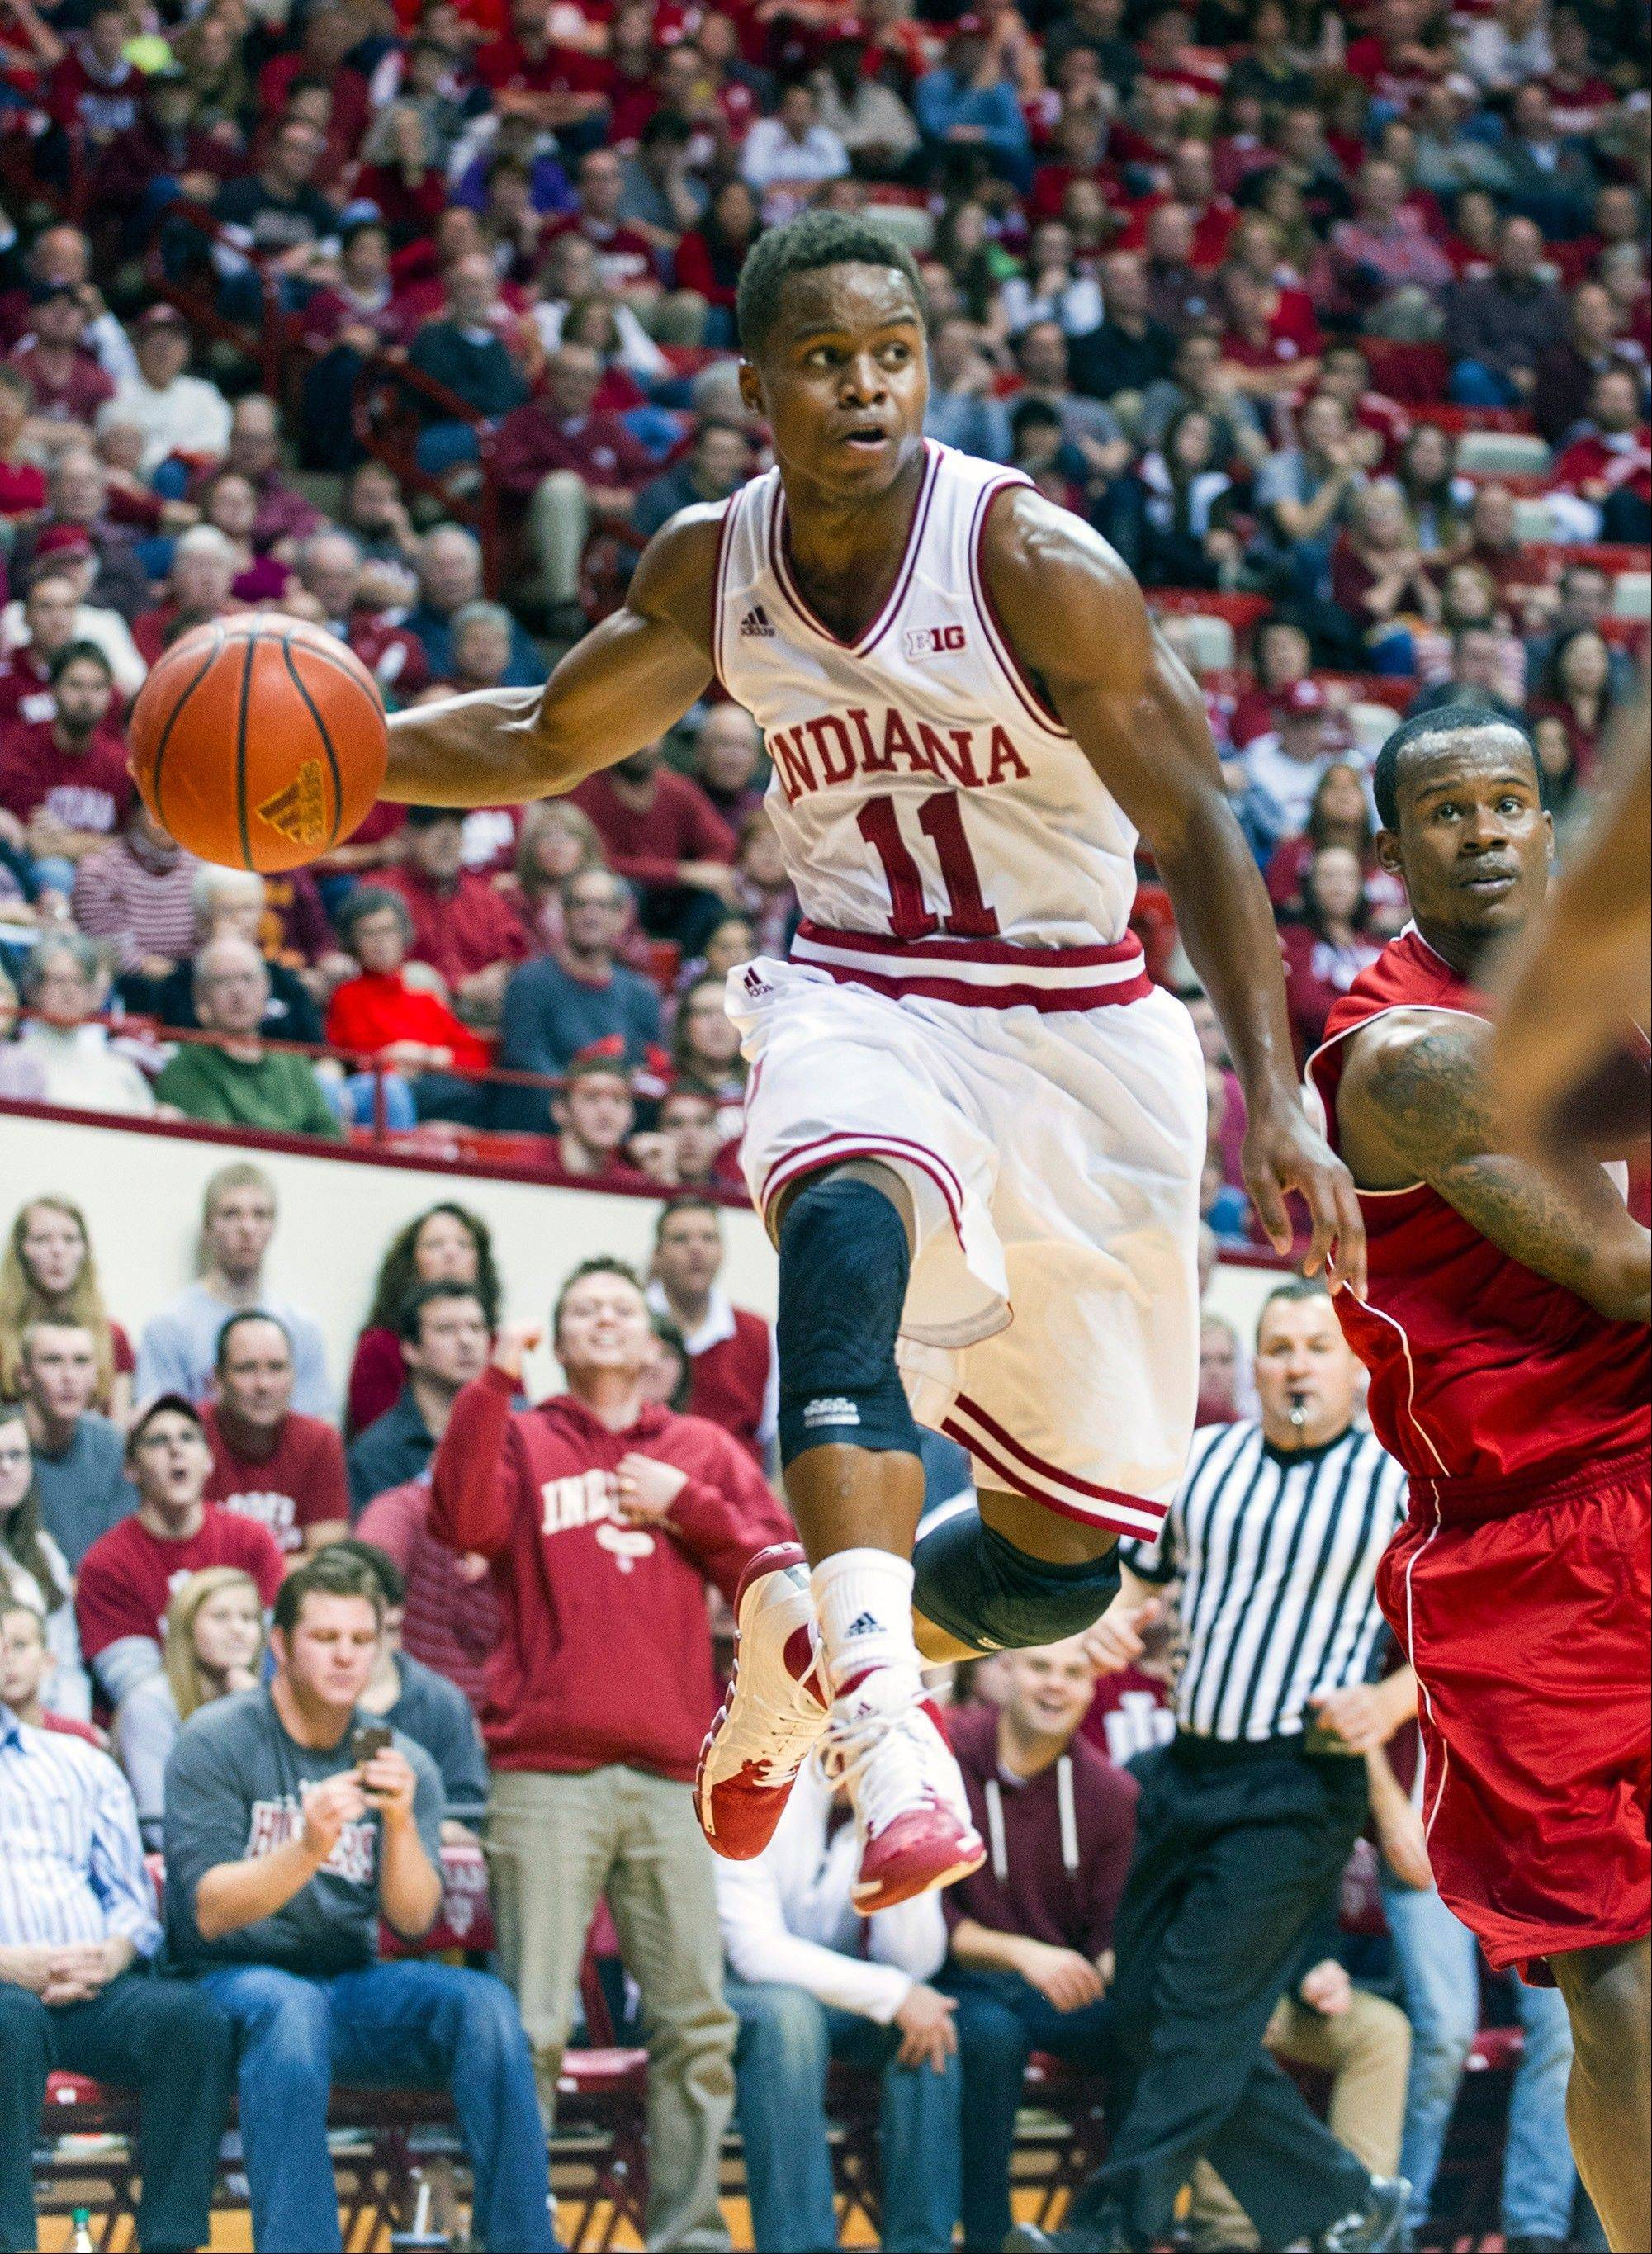 Indiana downs Nicholls State 76-66